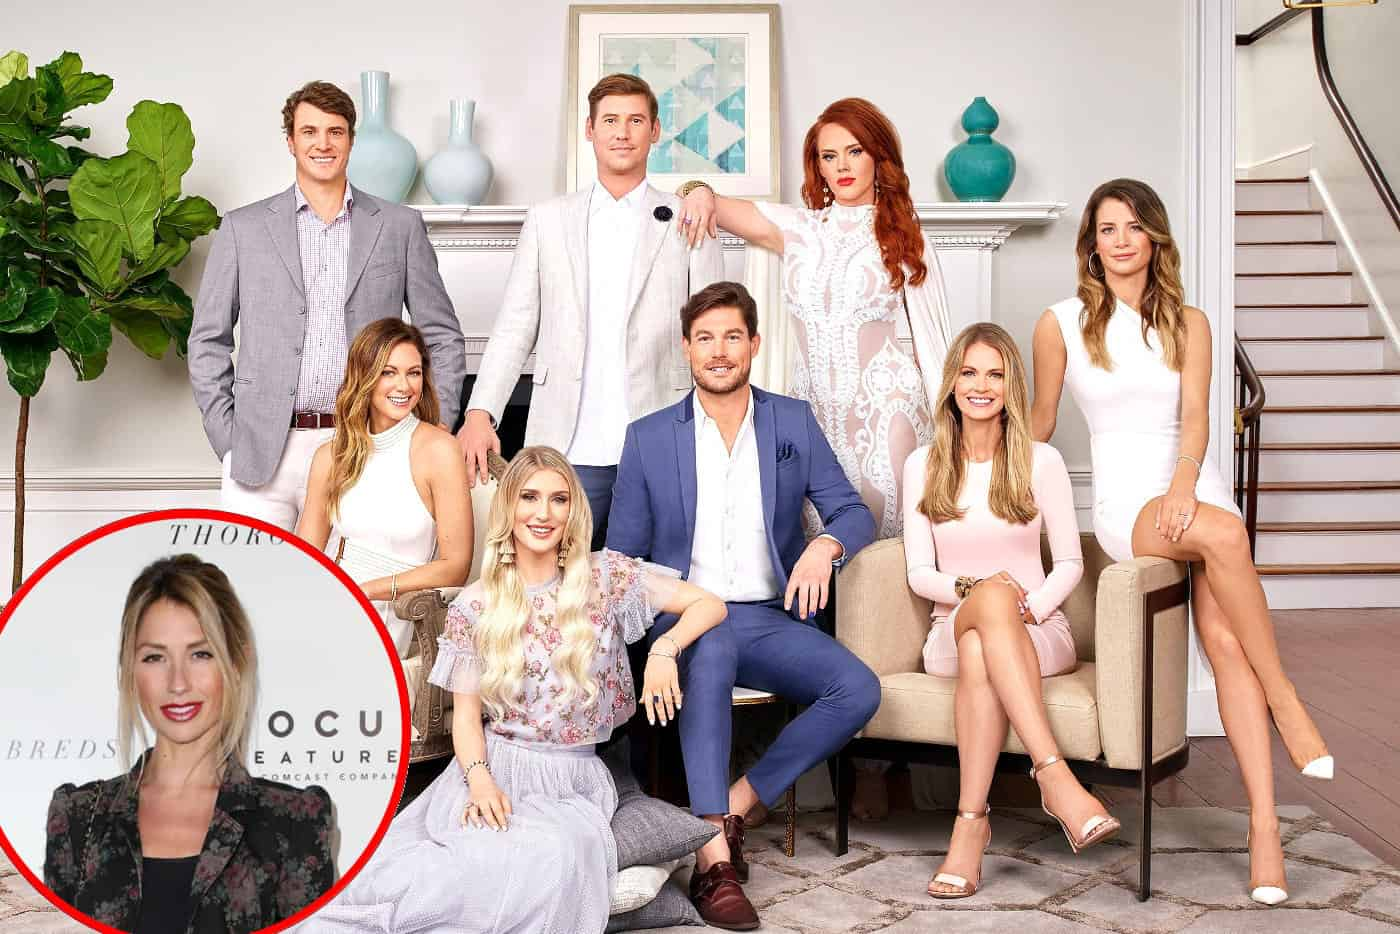 VIDEO: Watch Southern Charm Season 6 Trailer! Ashley Returns and Calls Cops, Plus Hookup Between Kathryn and Costar